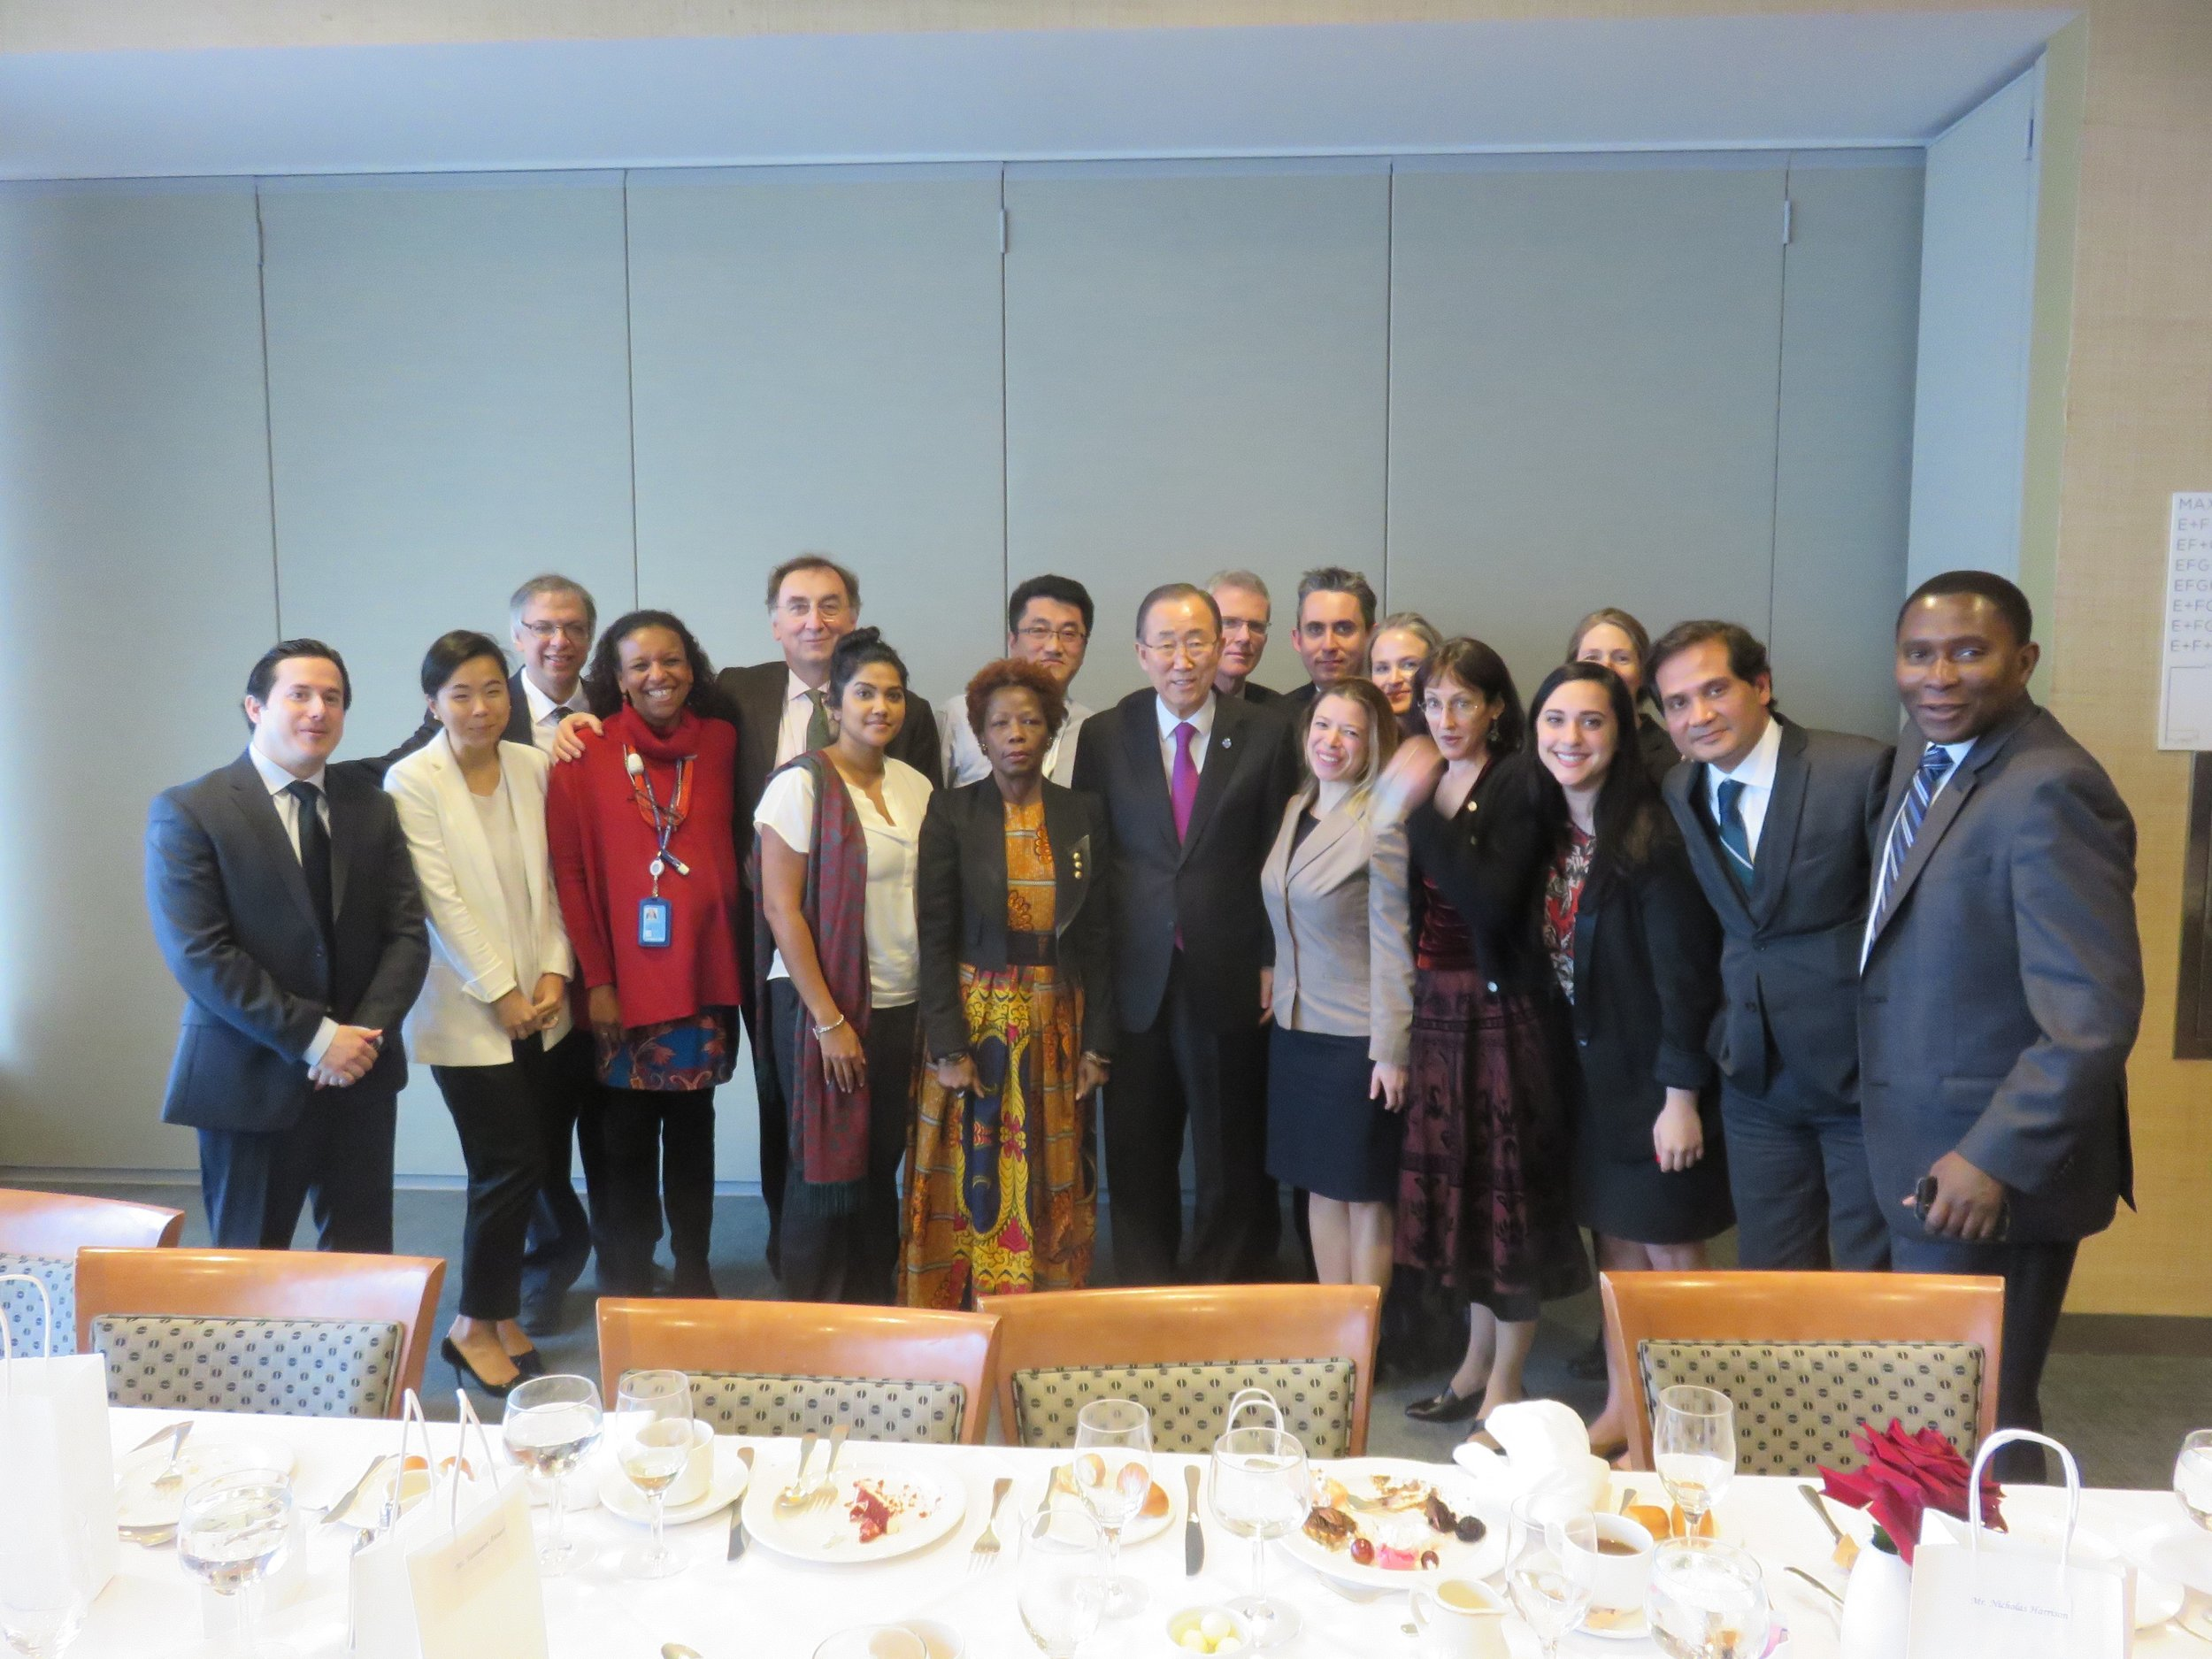 The UN Secretary-General's Climate Change Support Team, UN Headquarters, December 2016